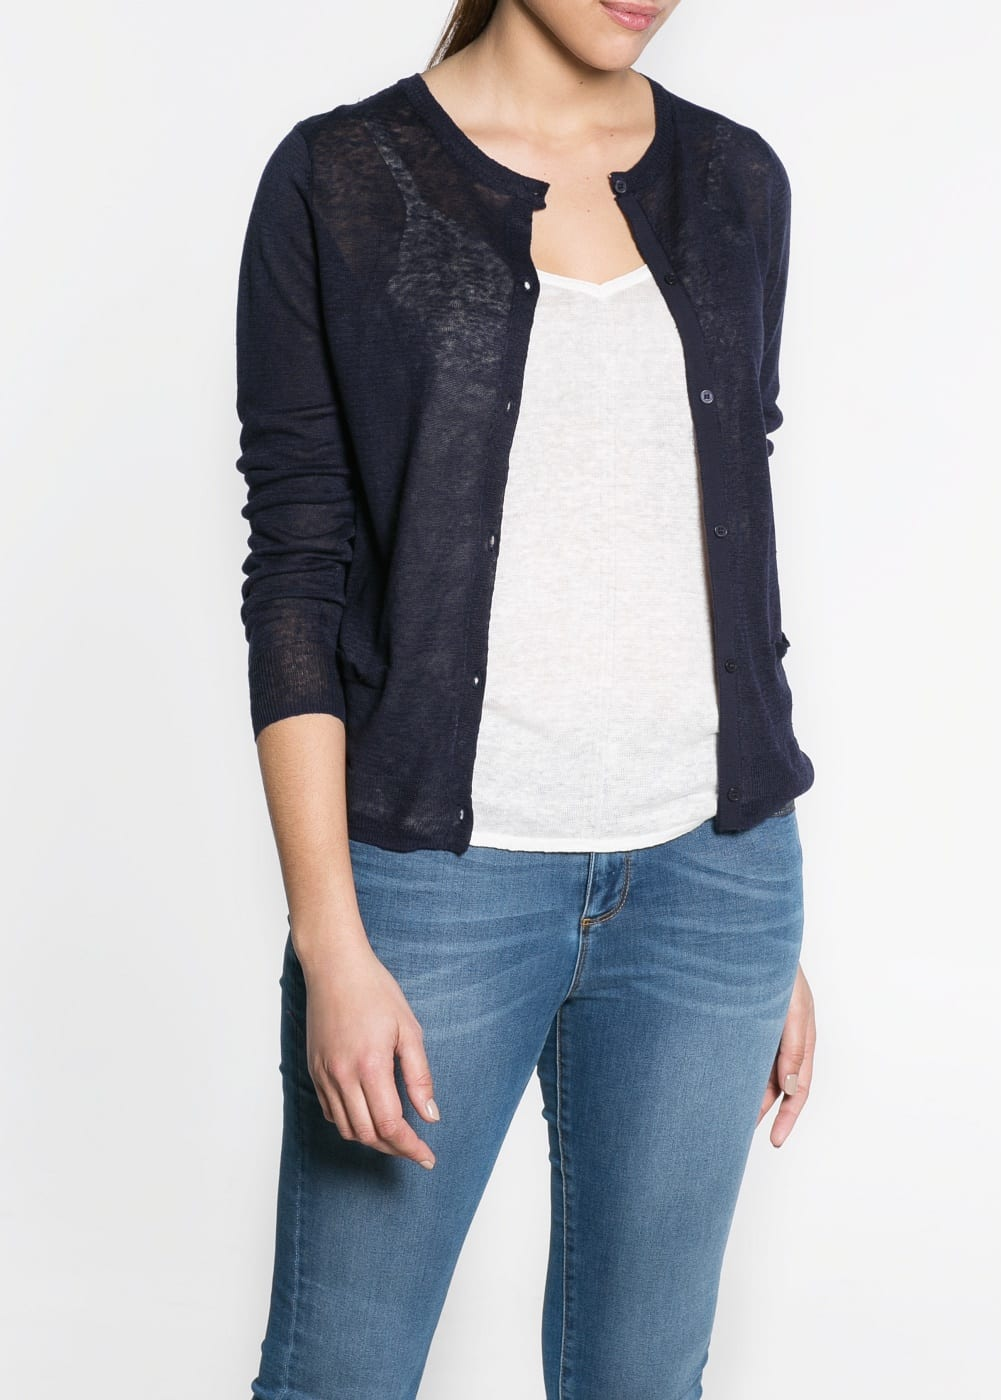 Broderie anglaise linen cardigan